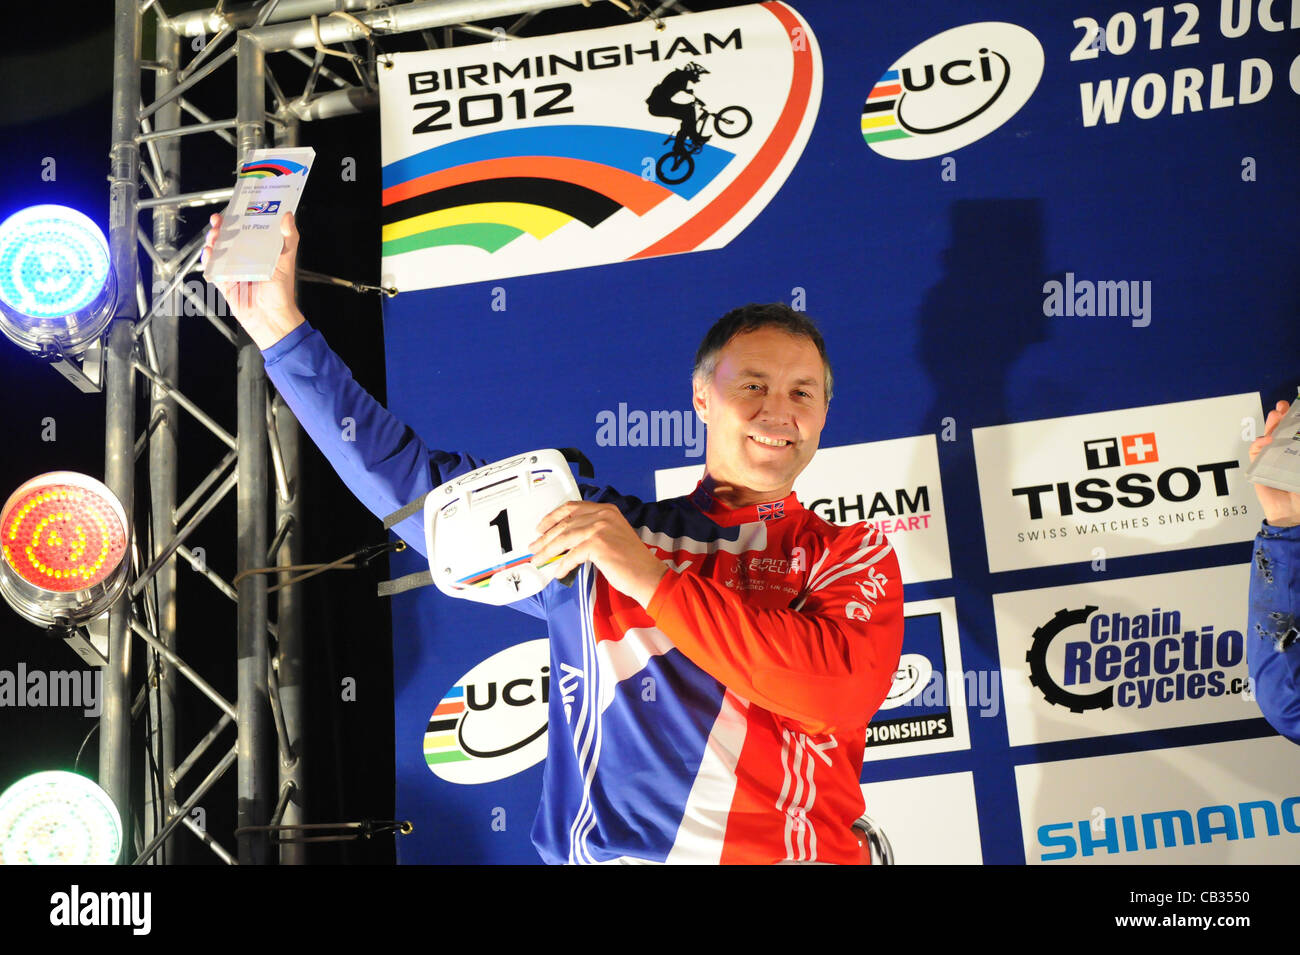 05.27.2012. England, Birmingham, National Indoor Arena. UCI BMX World Championships. Podium trio for the Cruisers - Stock Image